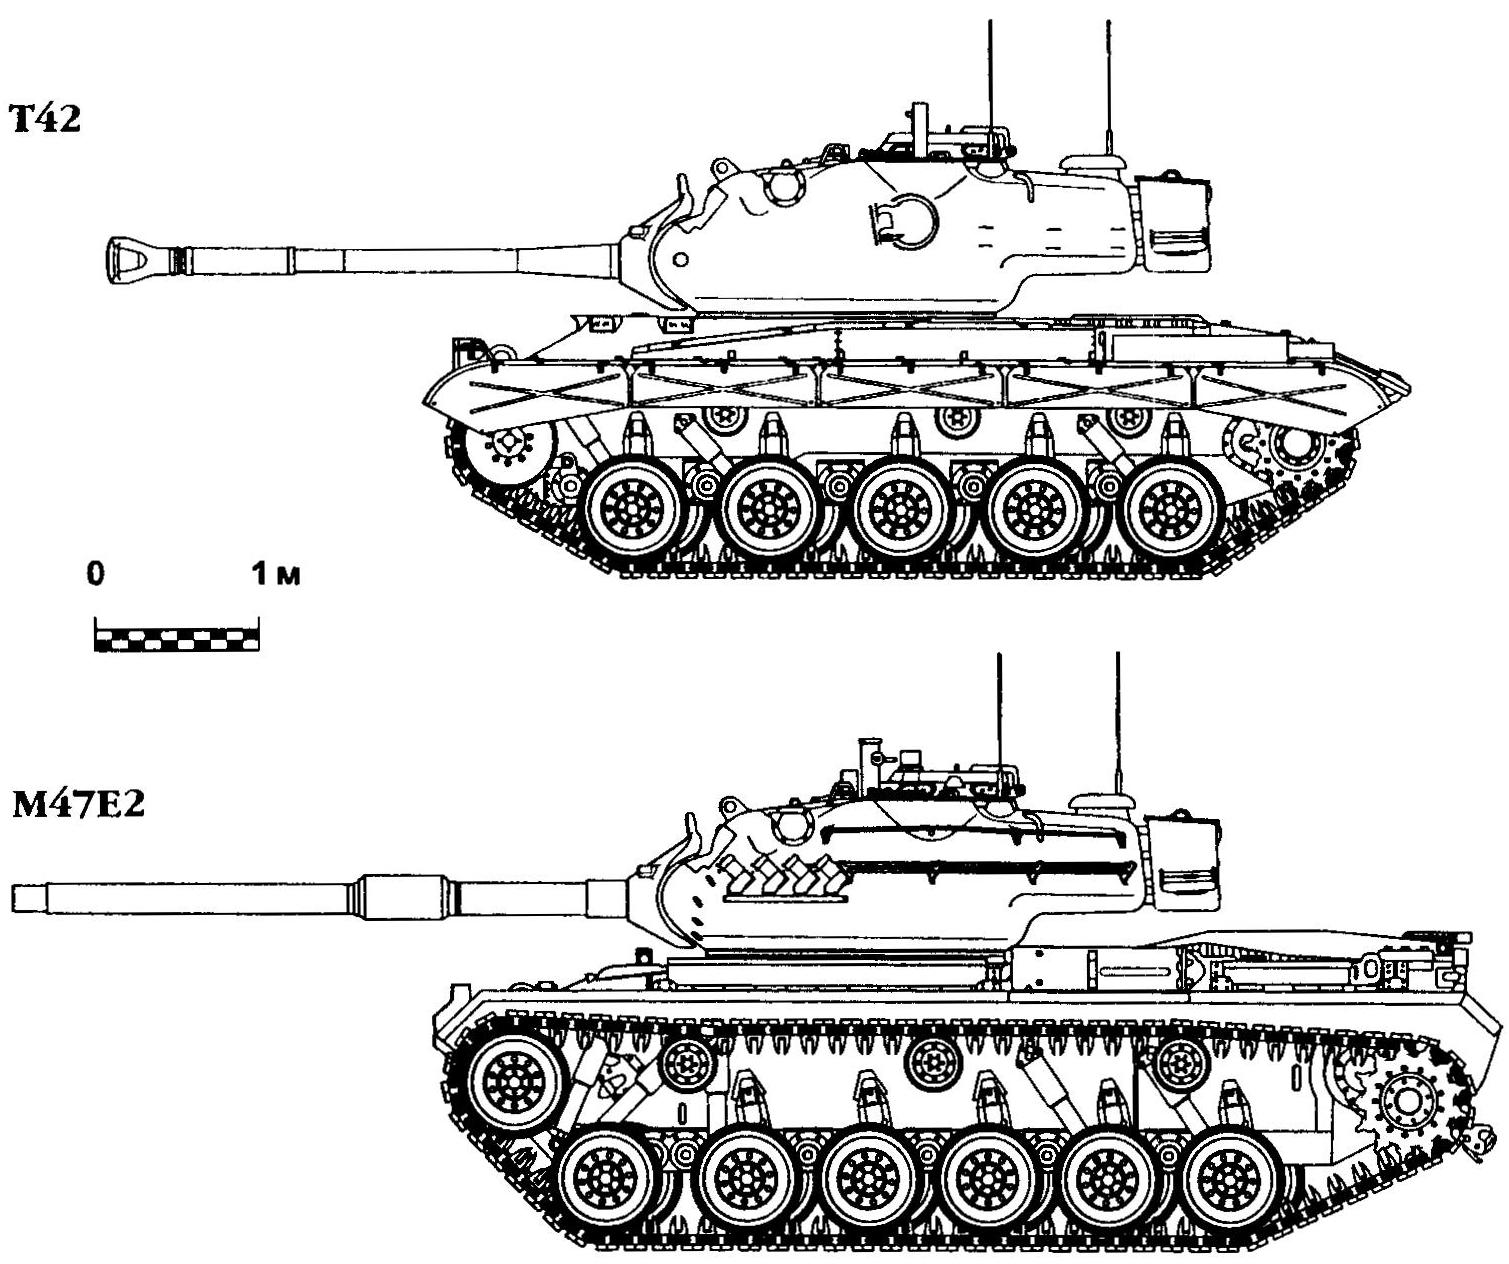 T42 and M47E2